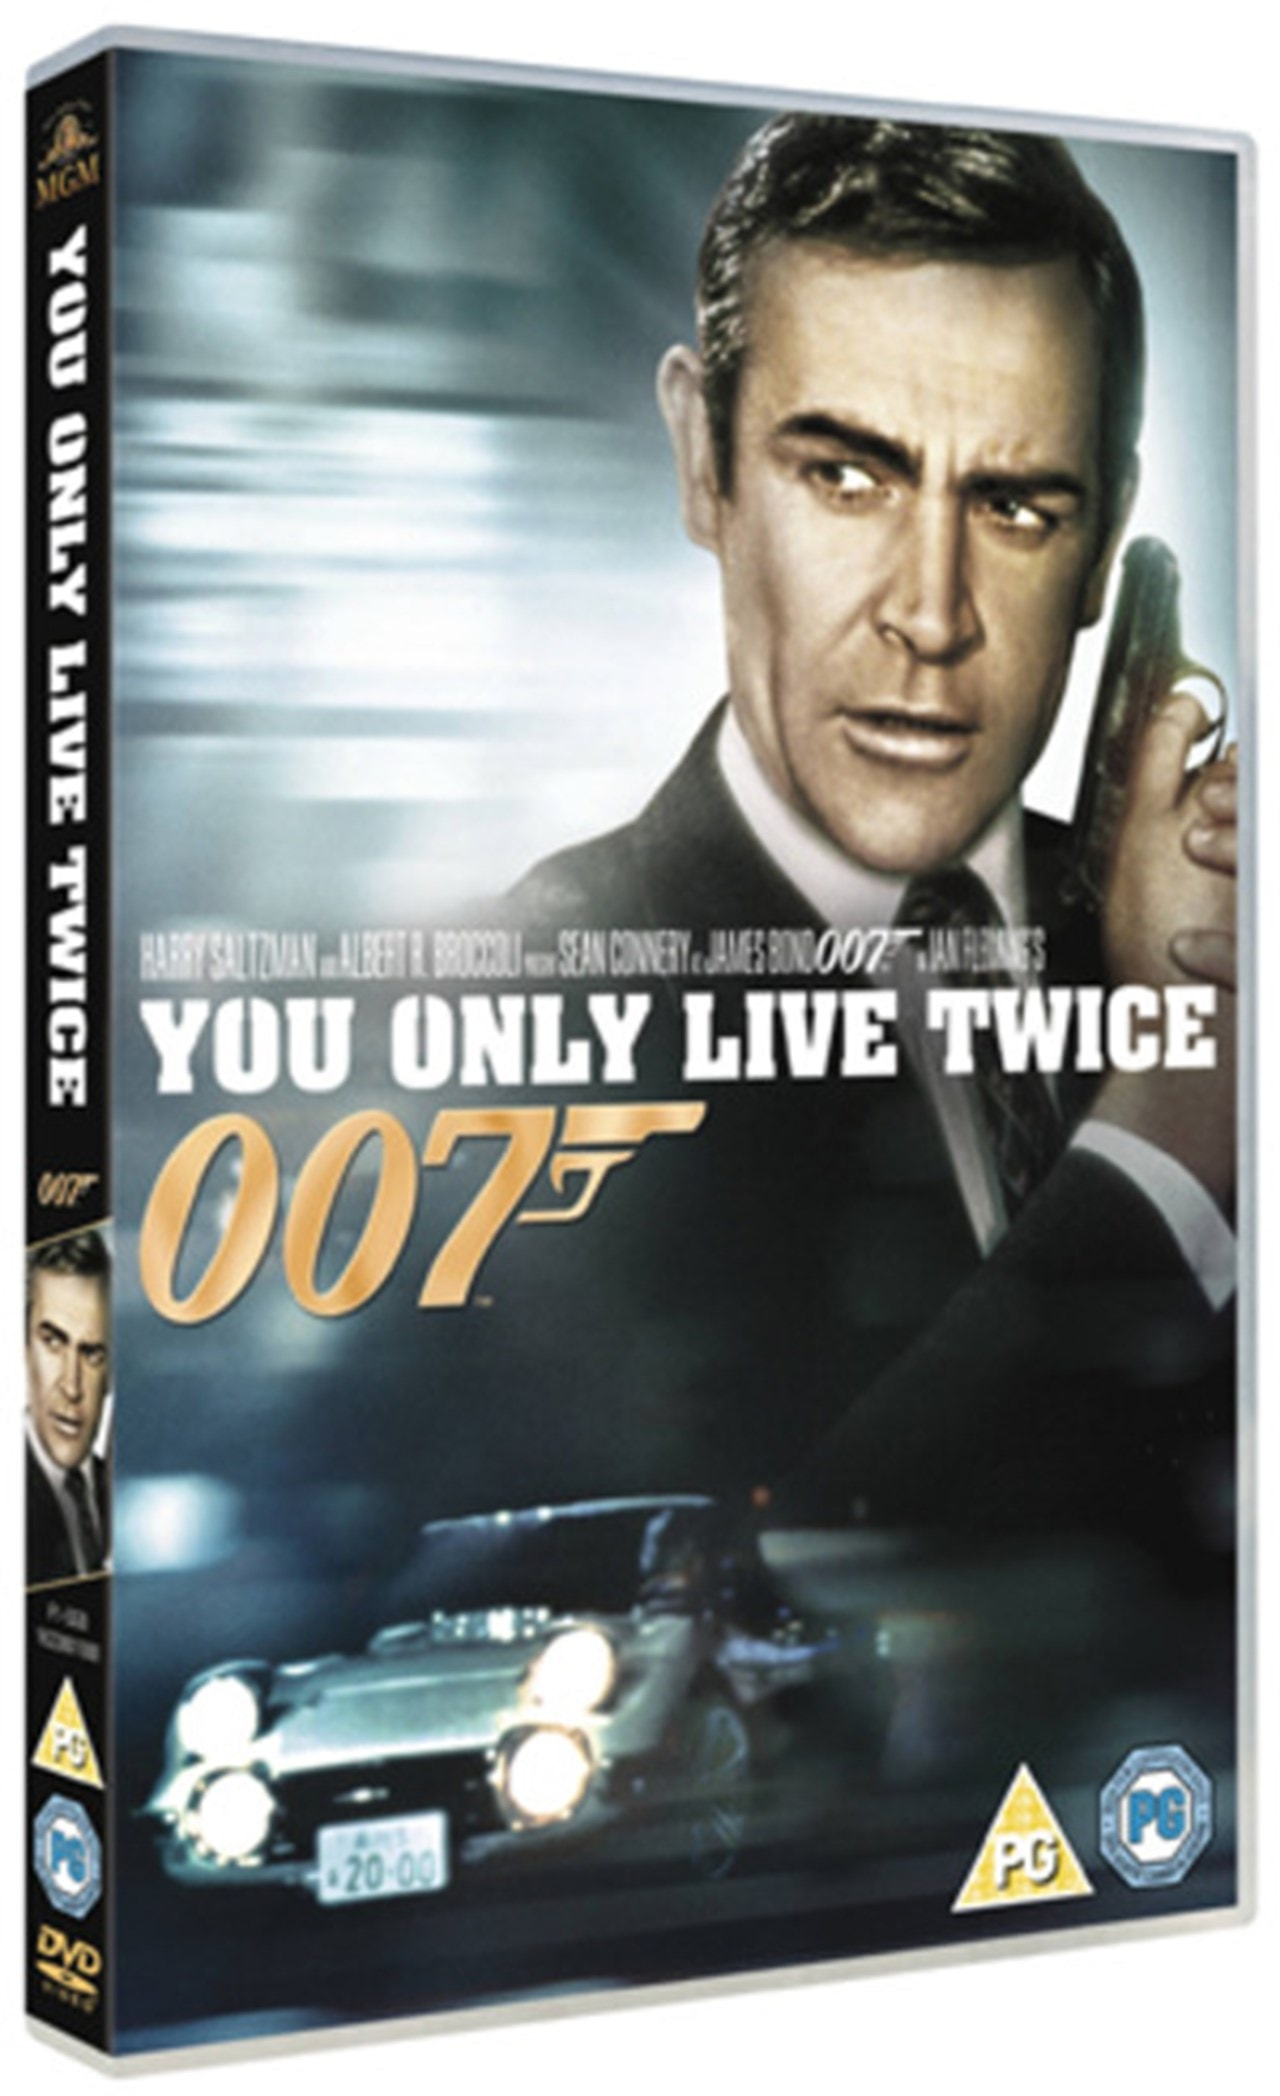 You Only Live Twice - 1